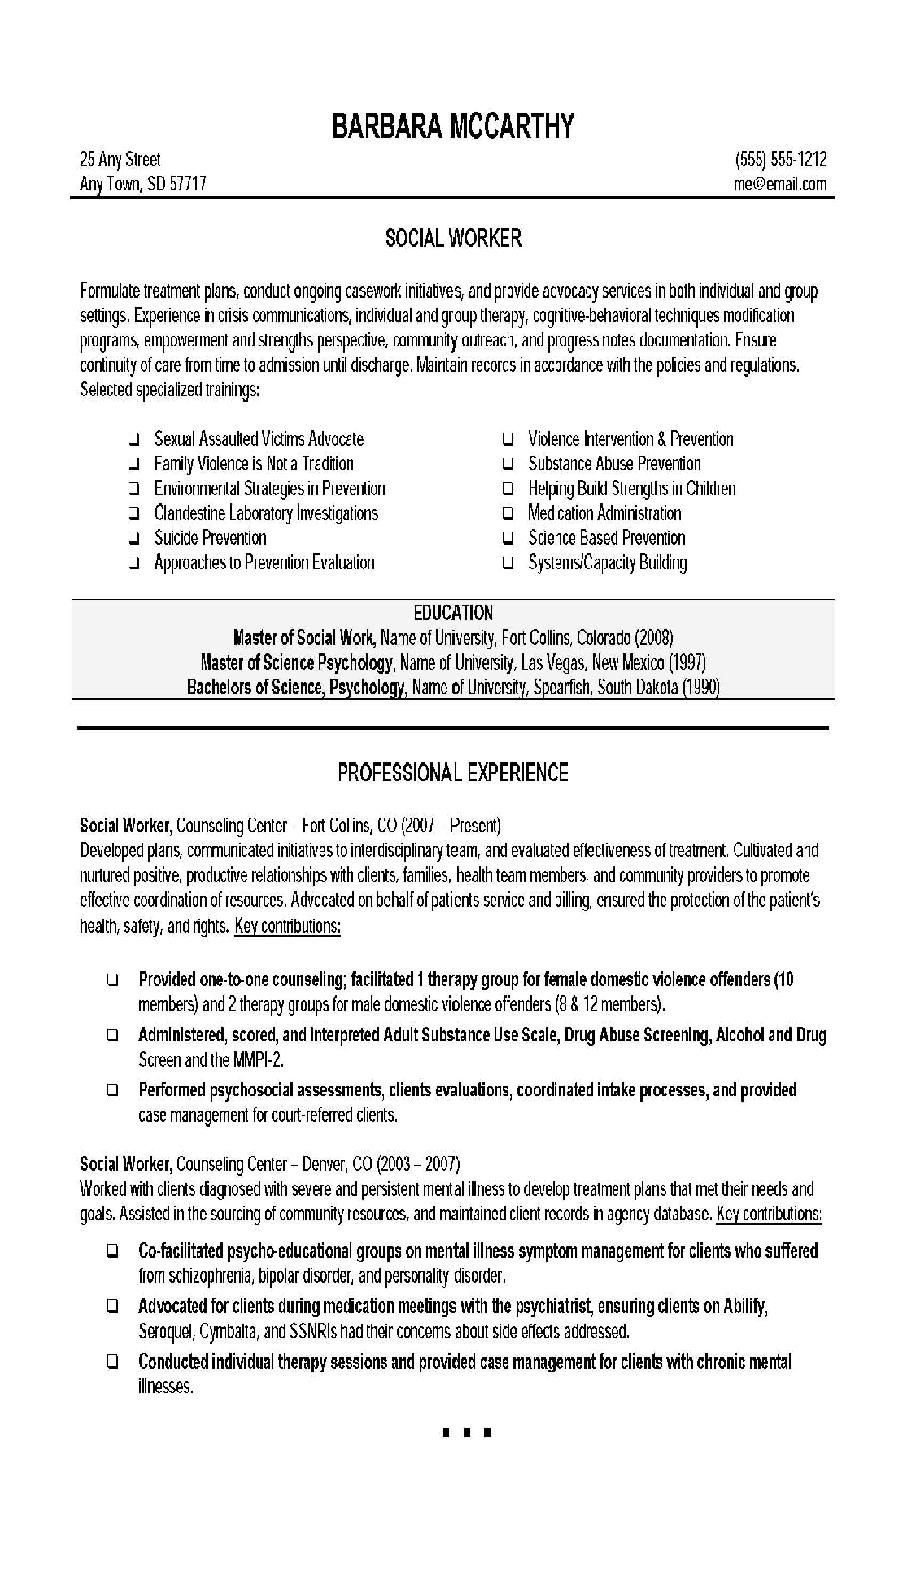 Social Worker Resume   Studying Tips For Lmsw